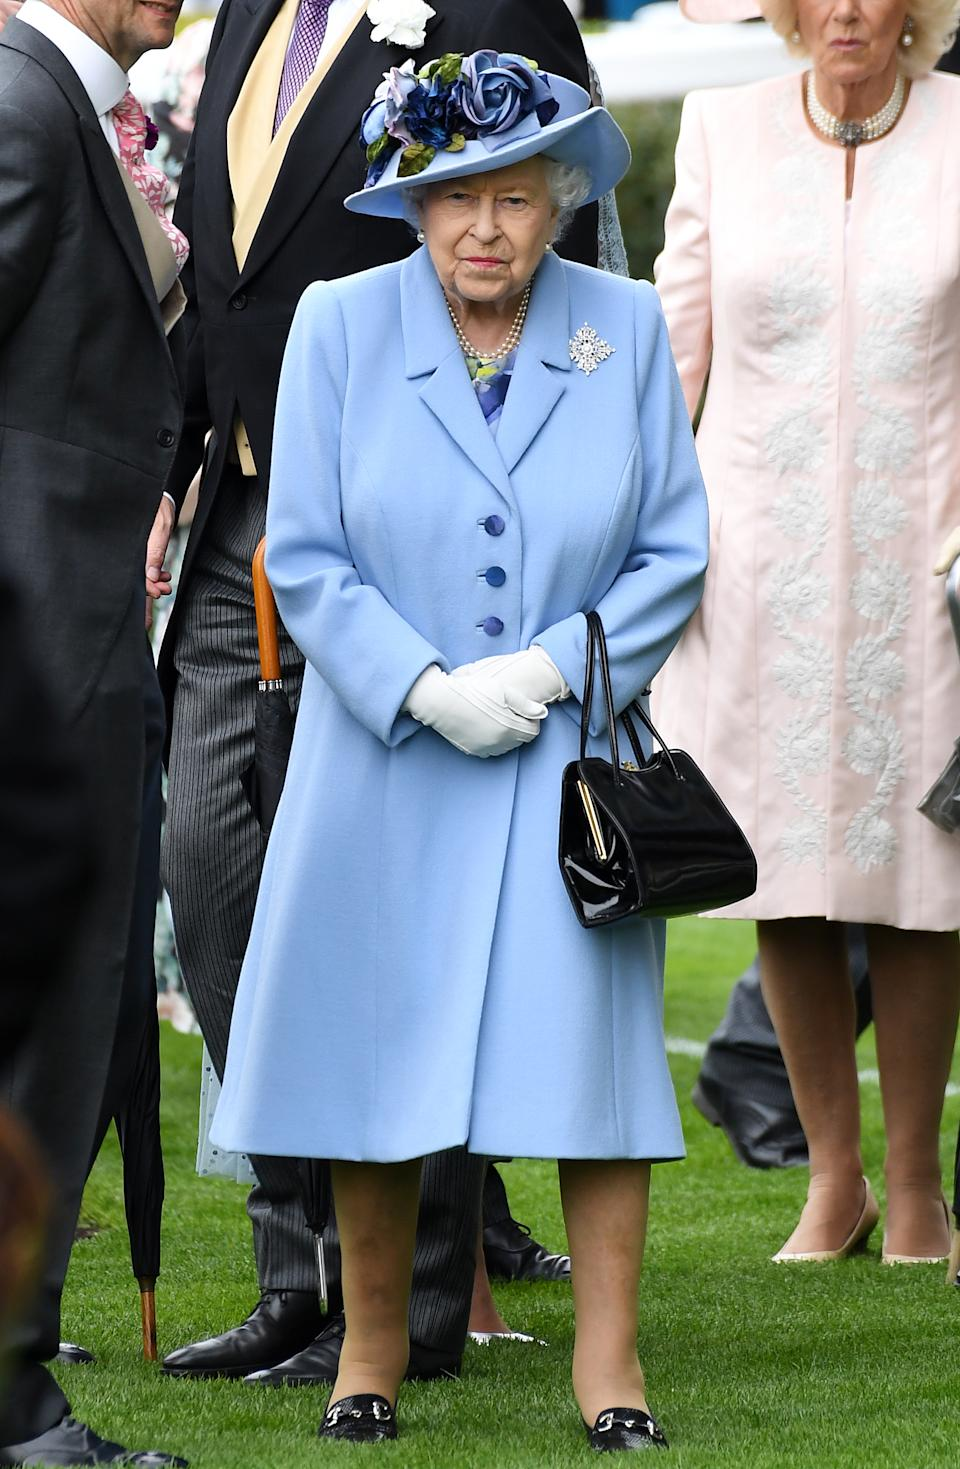 The Queen wore a cornflower blue coat and floral hat, believed to be by Angela Kelly, for day one of Royal Ascot. <em>[Photo: PA]</em>